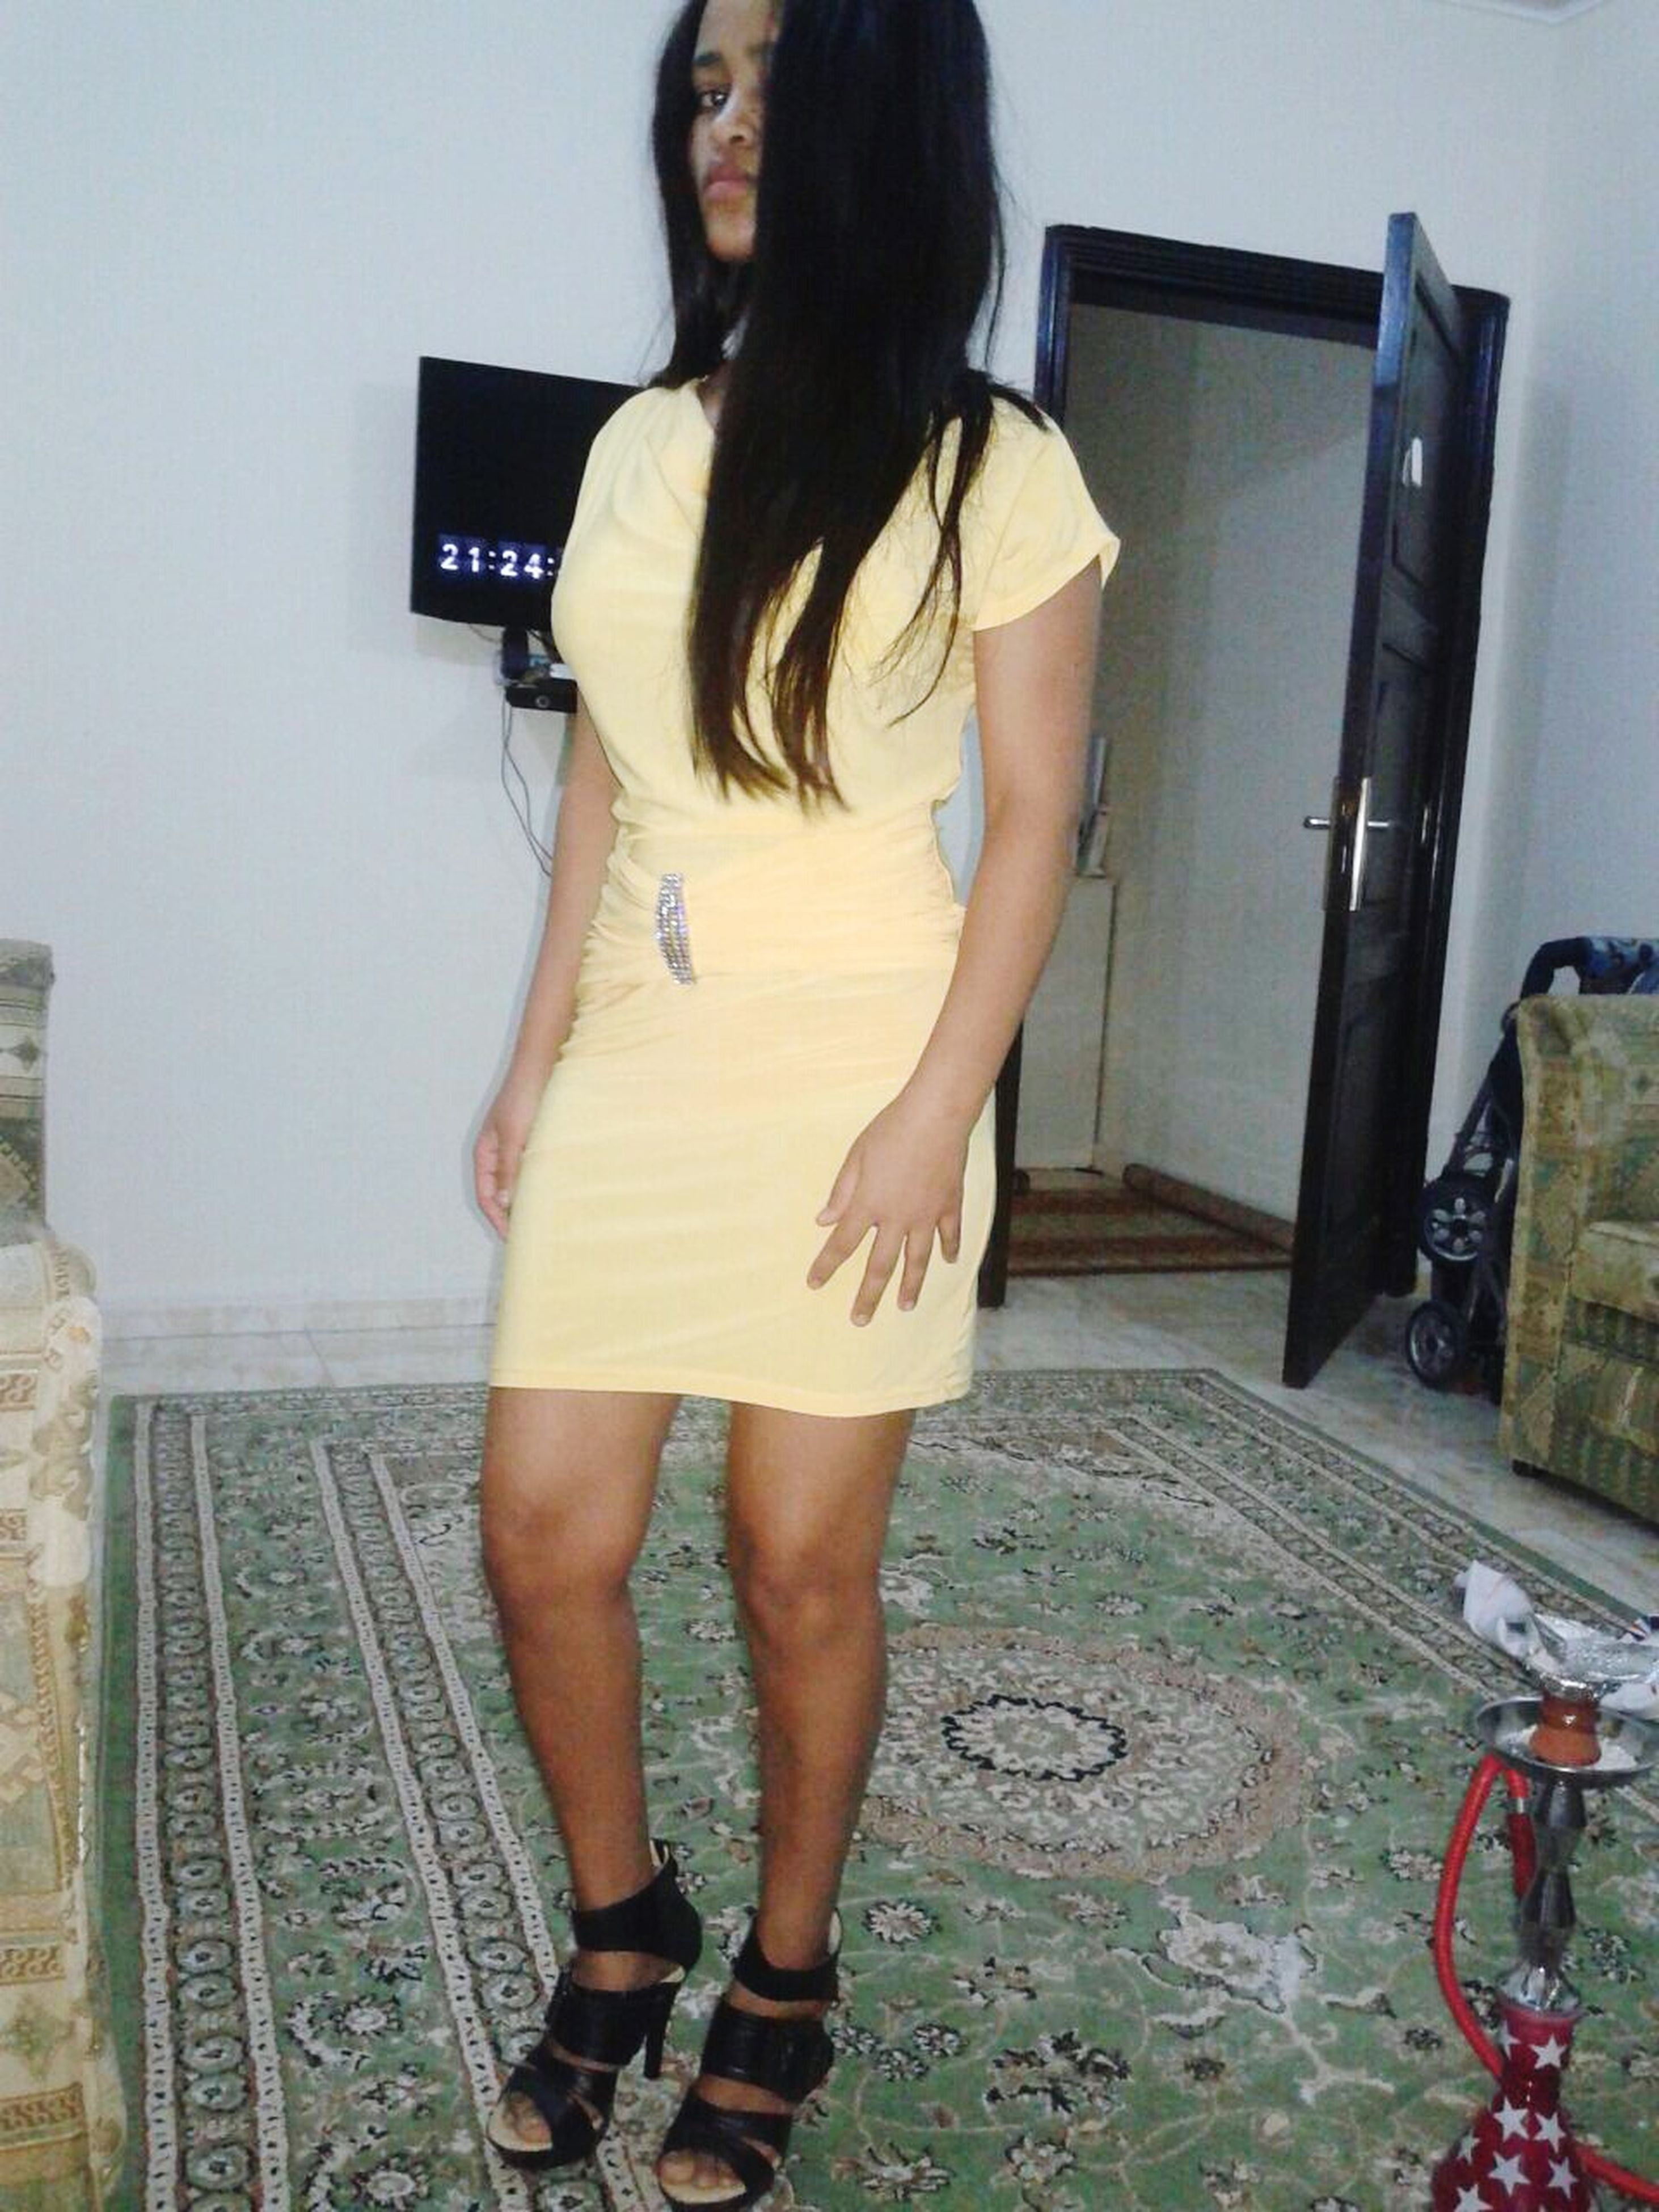 lifestyles, standing, full length, young adult, young women, casual clothing, leisure activity, long hair, front view, person, dress, holding, wall - building feature, three quarter length, side view, sensuality